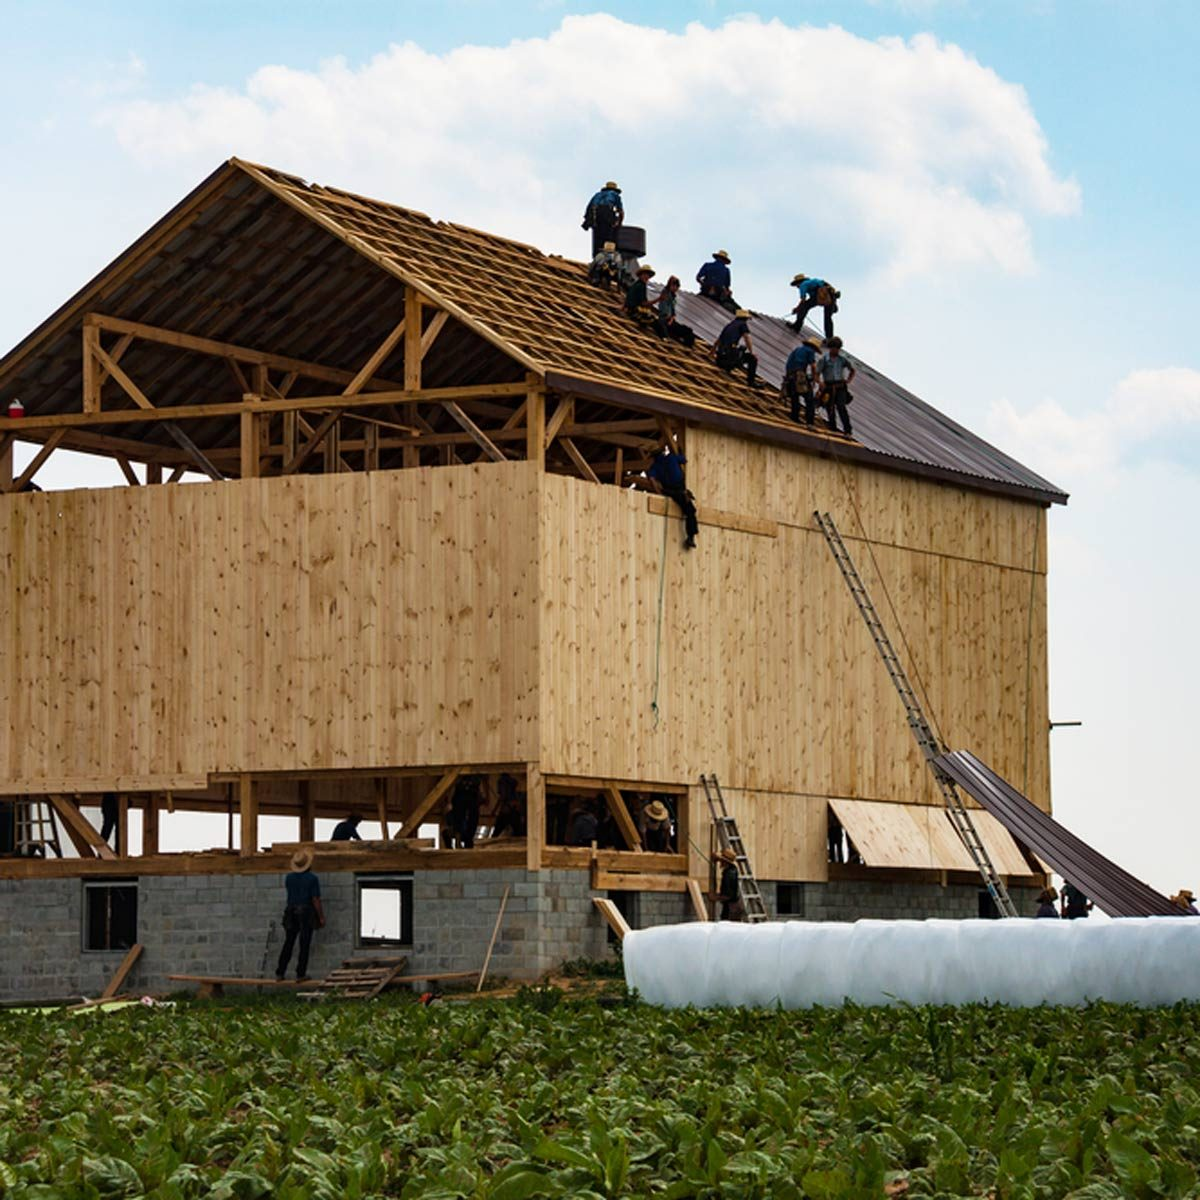 What is Amish Barn Raising? — The Family Handyman Raised Roof Barn Style House Plans on l-shaped cape house plans, barn garage plans, victorian style barn plans, barn style chicken coop plans, small barn plans, pole barn plans, barn type roof designs, gambrel style home plans, barn style garages, gambrel roof plans, barn homes,